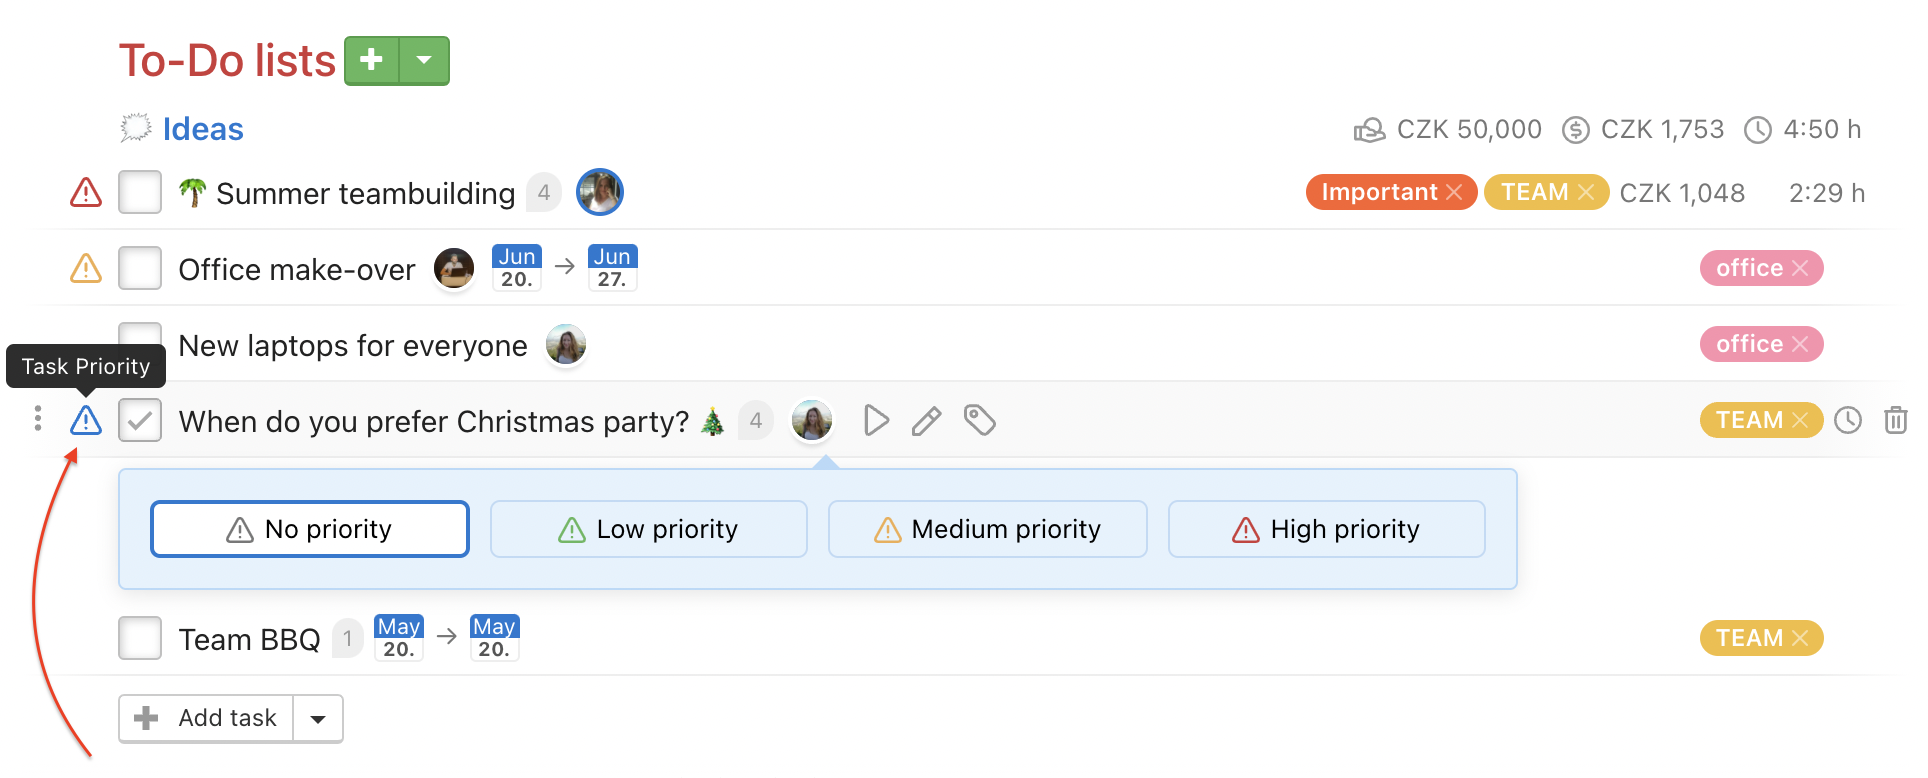 Click the Task Priority icon and set the priority.